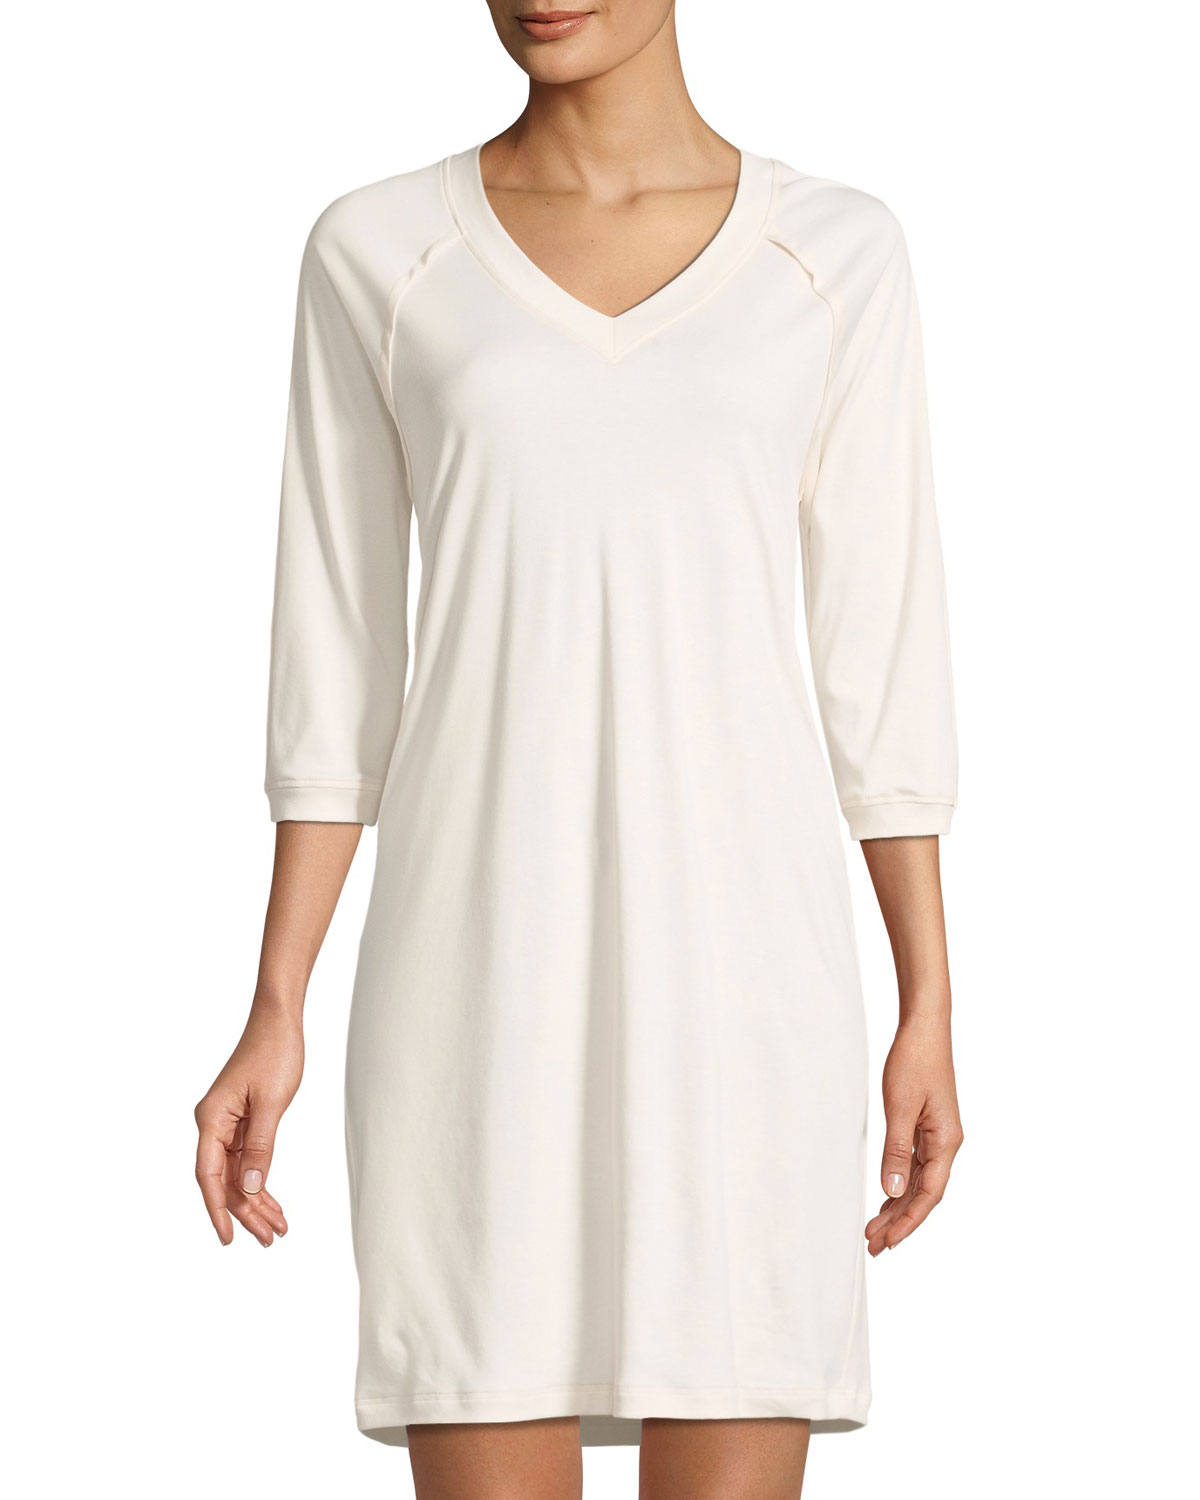 Hanro Tops PURE ESSENCE 3/4-SLEEVE GOWN